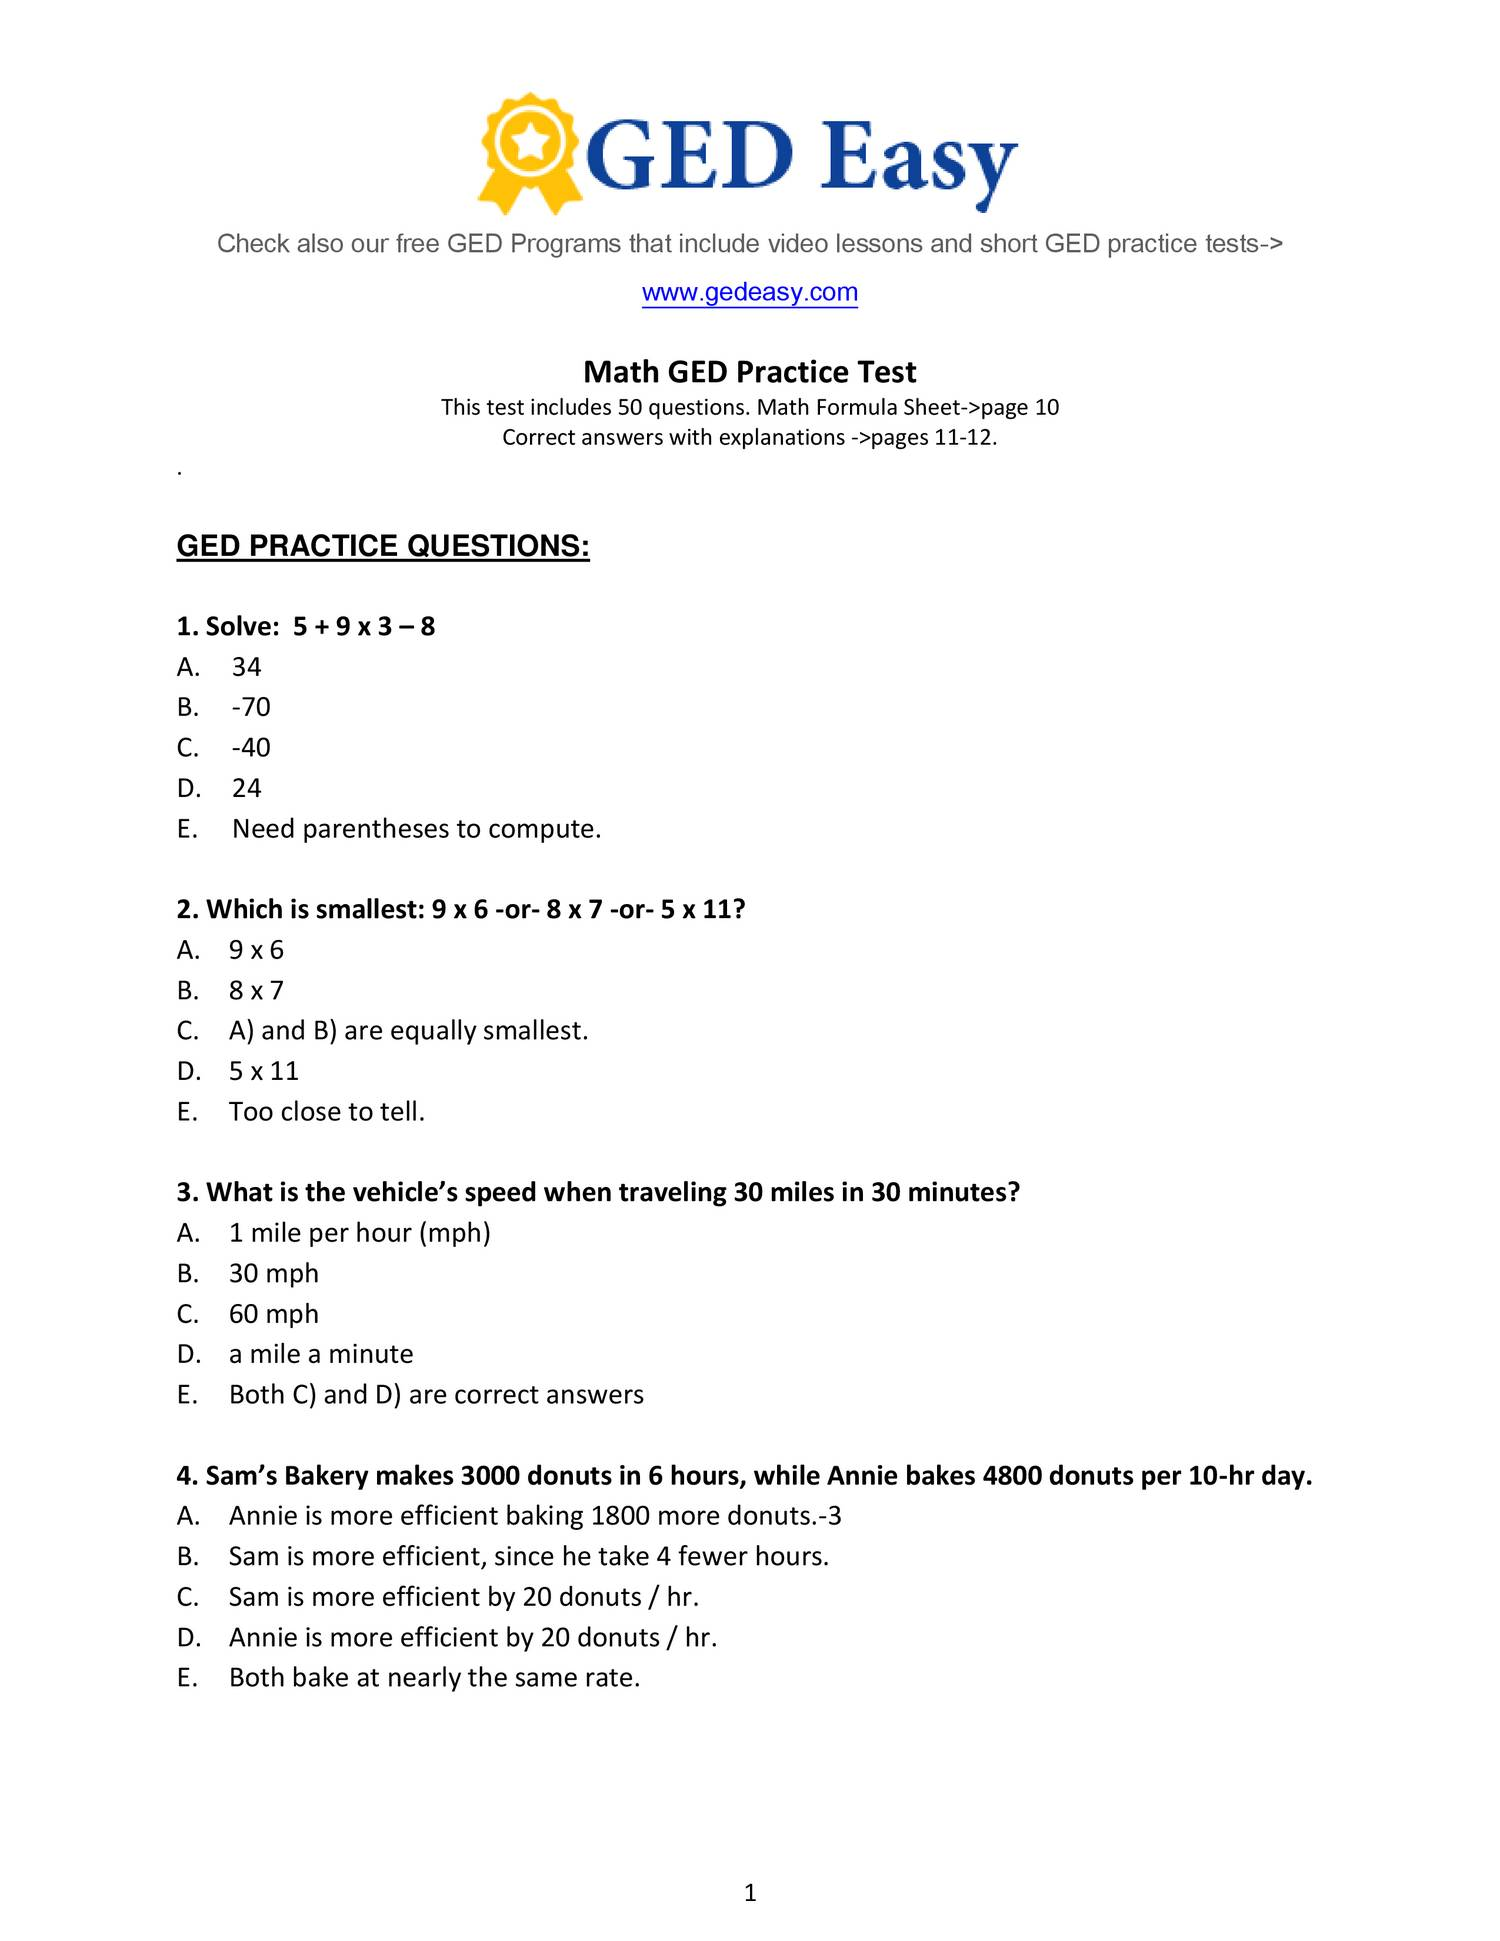 Nerdy image with printable ged practice worksheets pdf